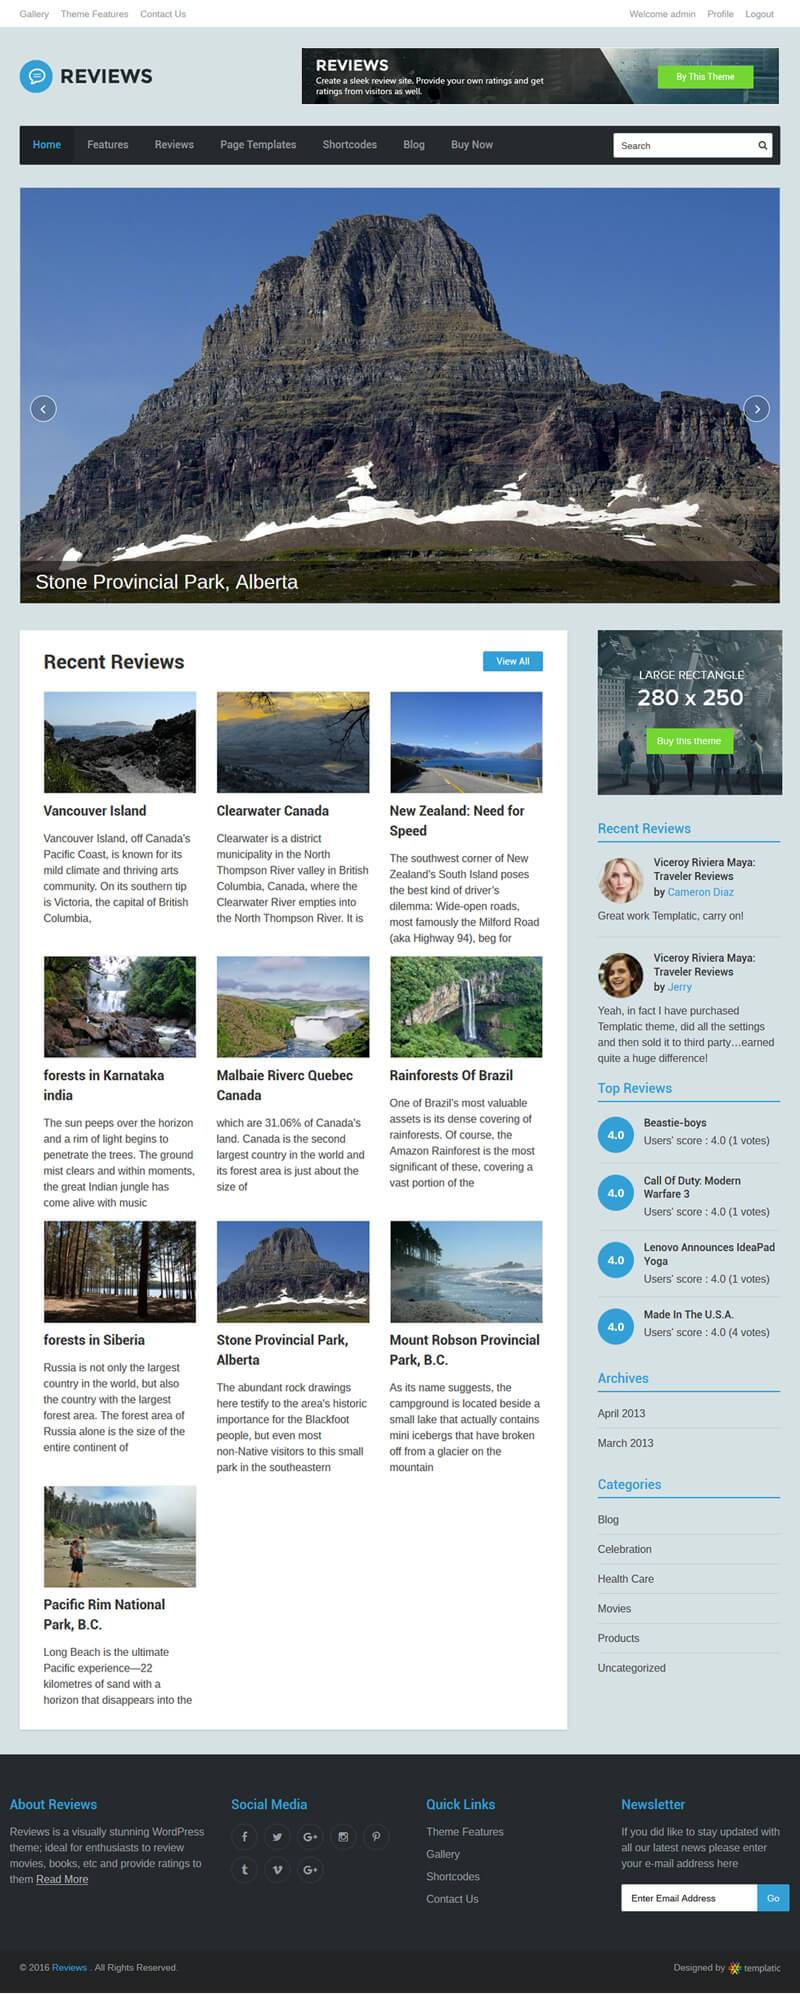 Grid View In Reviews WP Theme